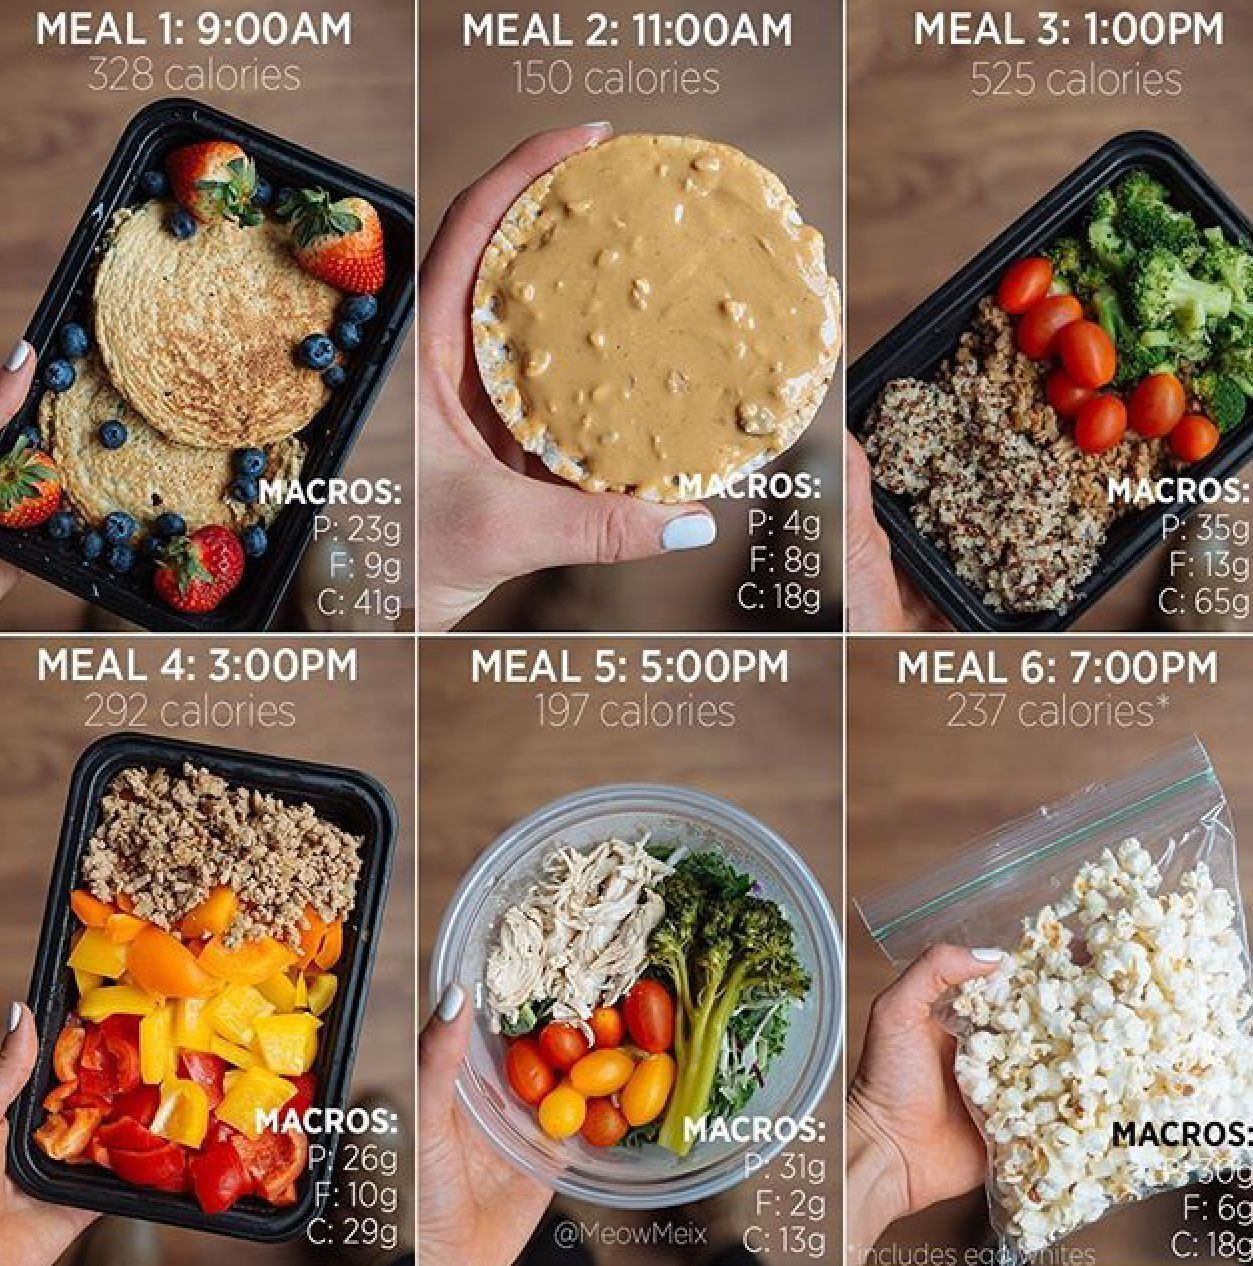 We Are Totally Inspired By This Example Day Of Meals And Mcros From Meowmeix Not All Calories Are Created Healthy Meal Plans Workout Food Meal Prep Plans